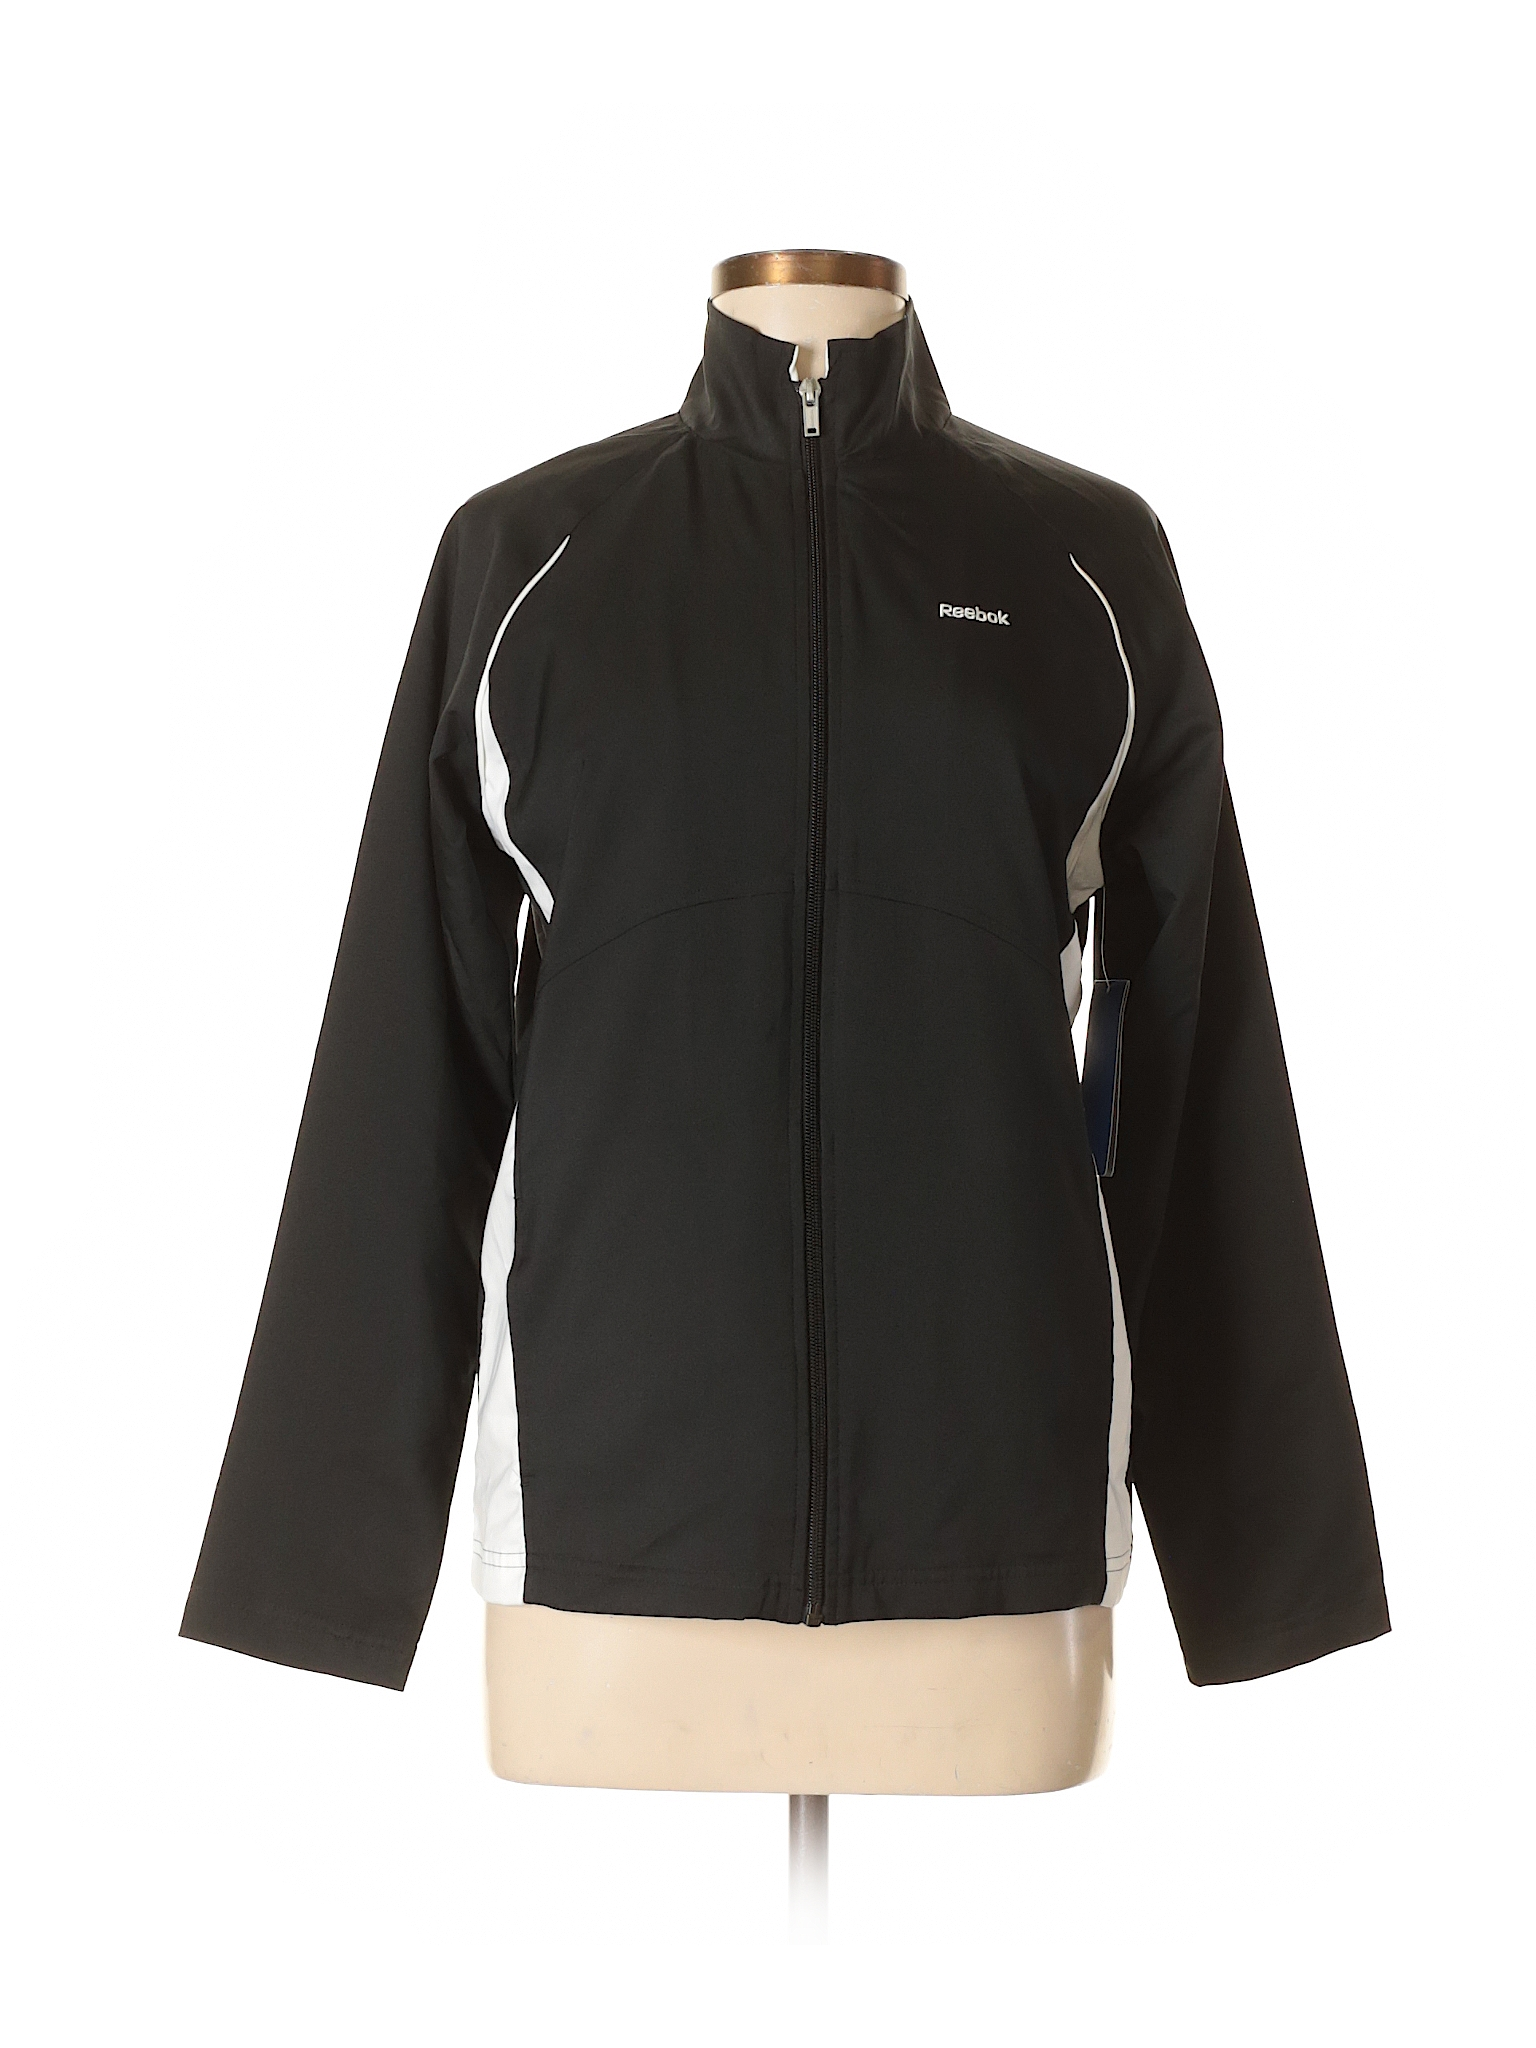 Check It Out Reebok Track Jacket For 13 99 On Thredup Track Jackets Jackets Jackets For Women [ 2048 x 1536 Pixel ]